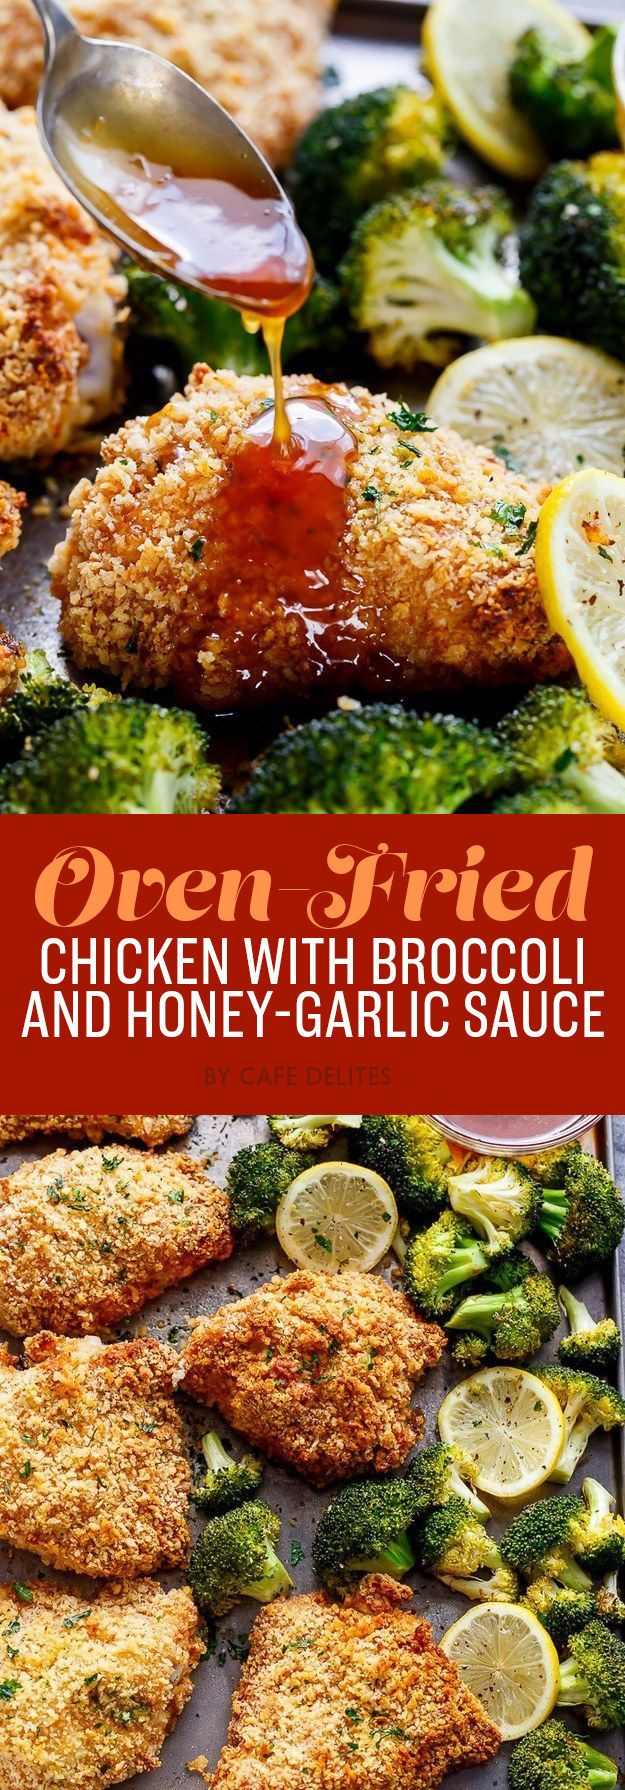 Oven-Fried Chicken with Broccoli and Honey-Garlic Sauce